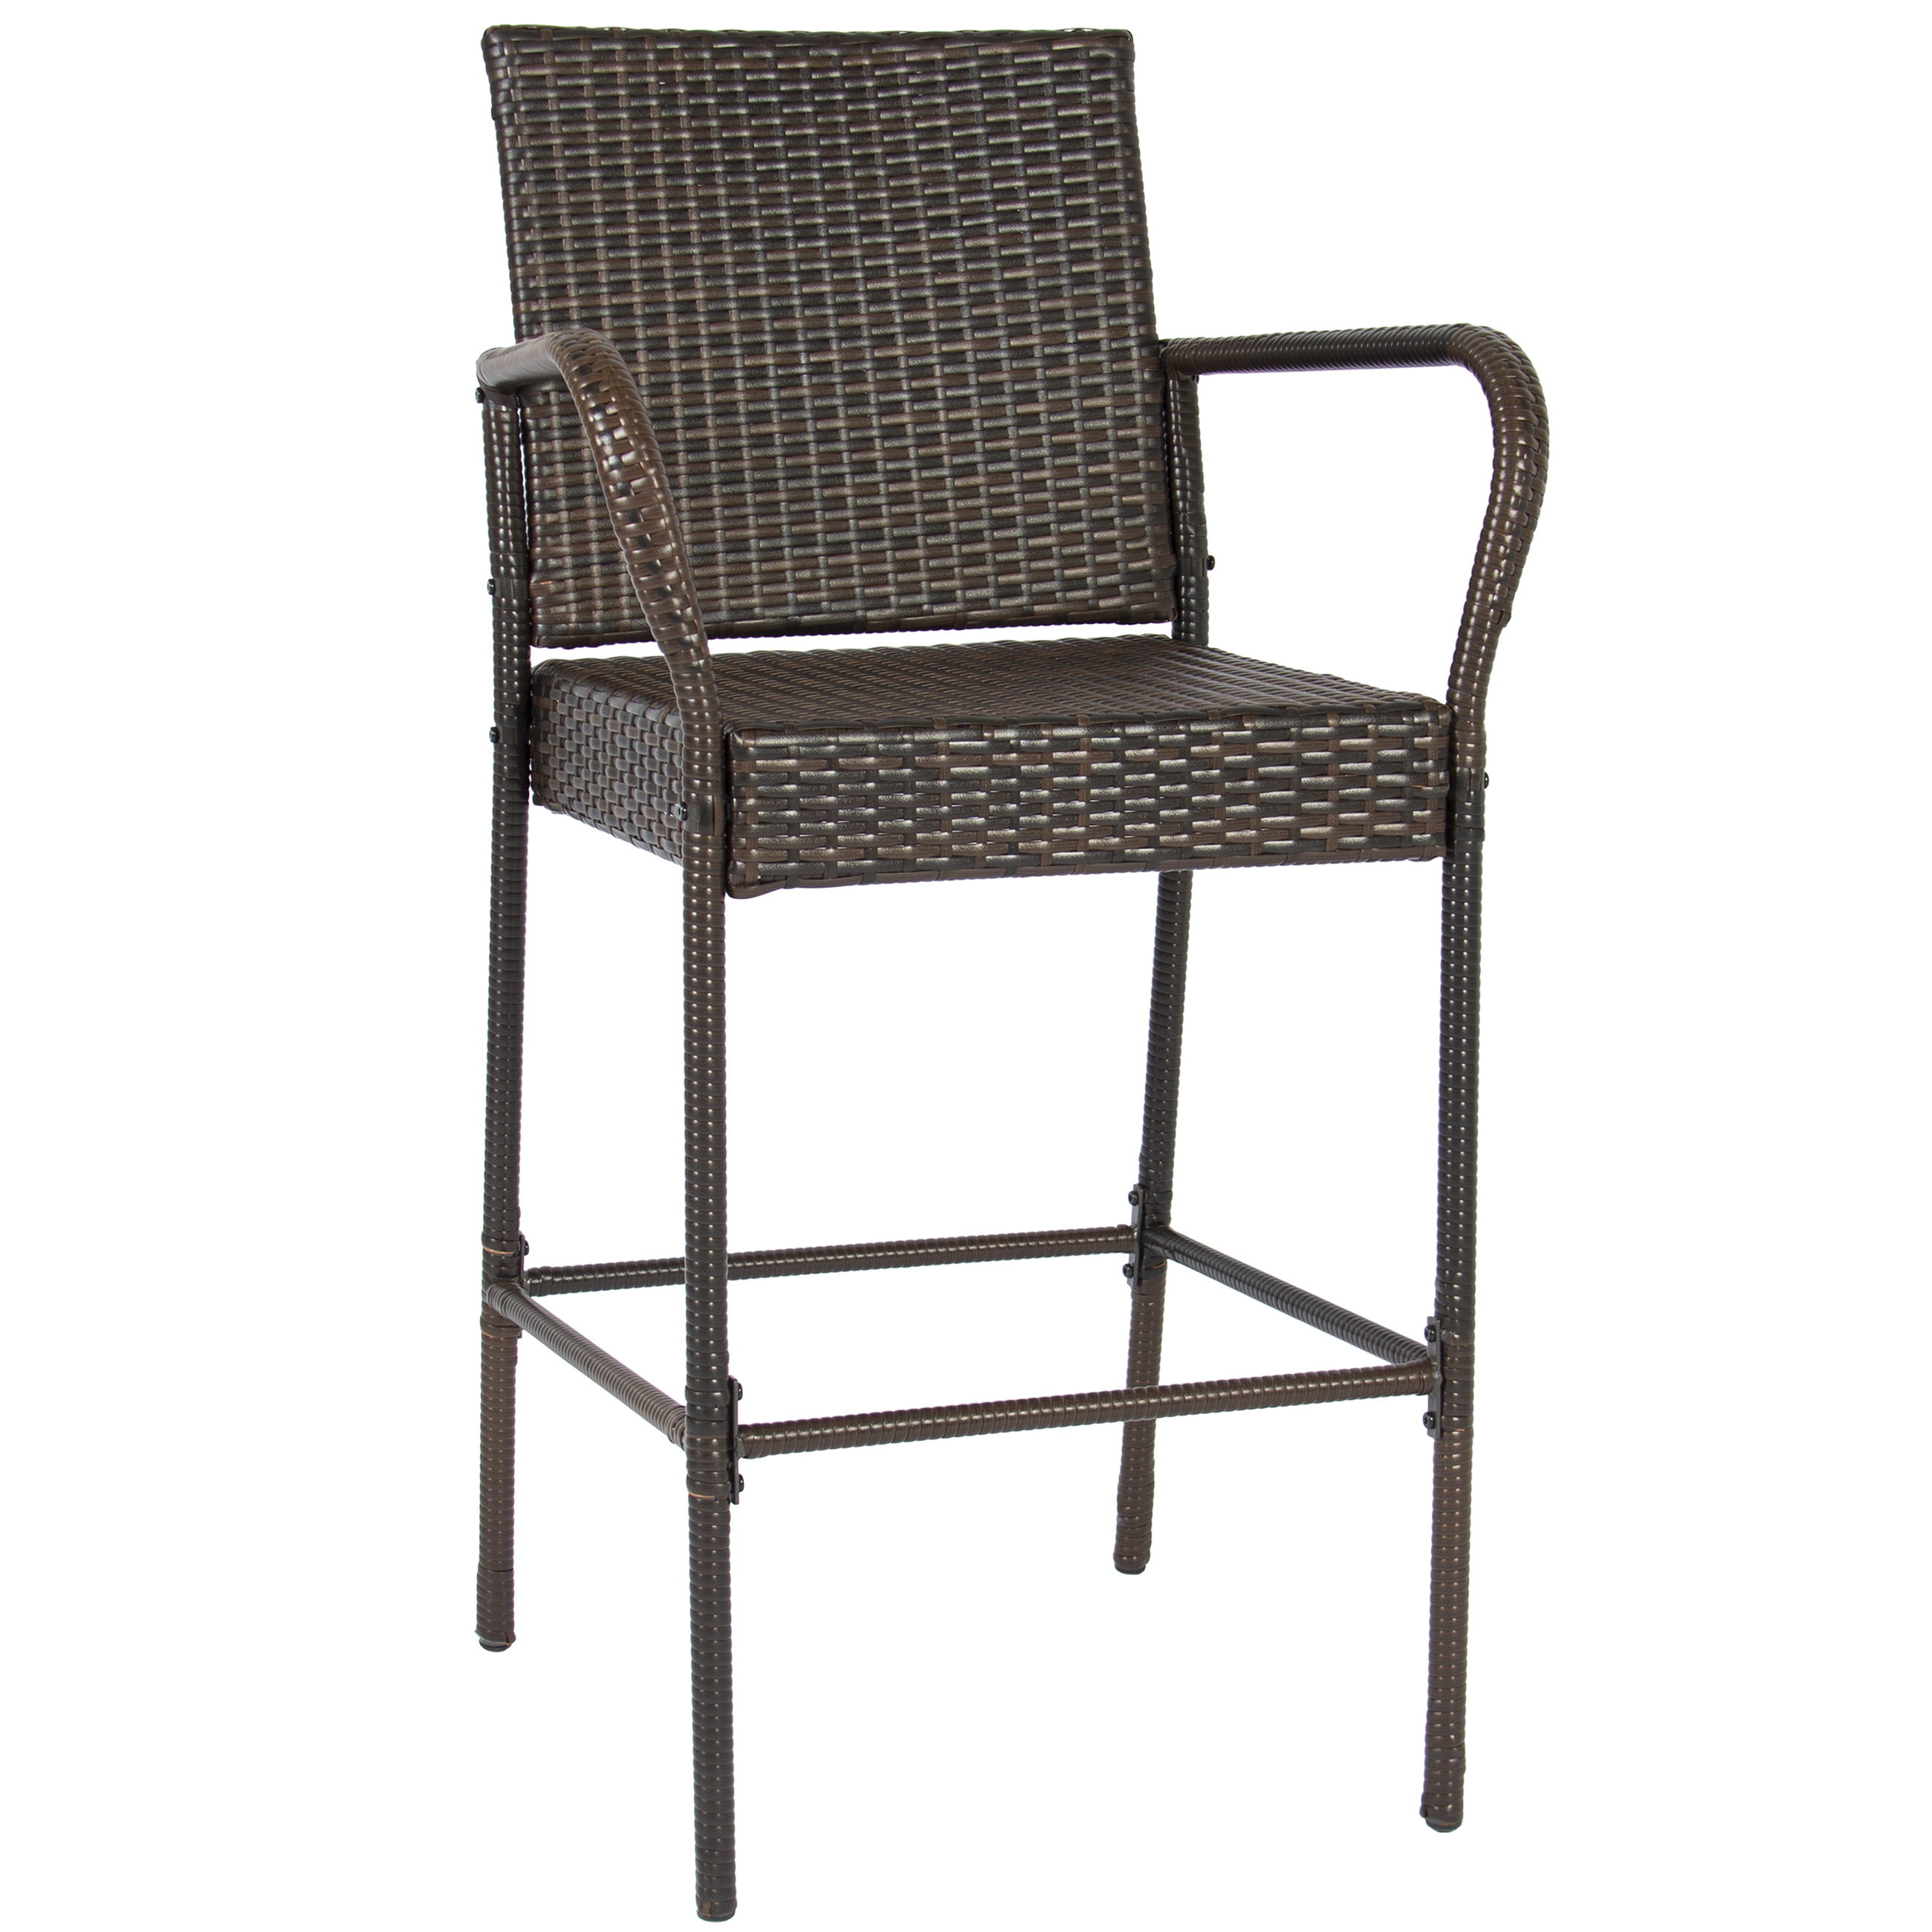 best choice products set of 2 outdoor brown wicker barstool outdoor patio furniture bar stool image